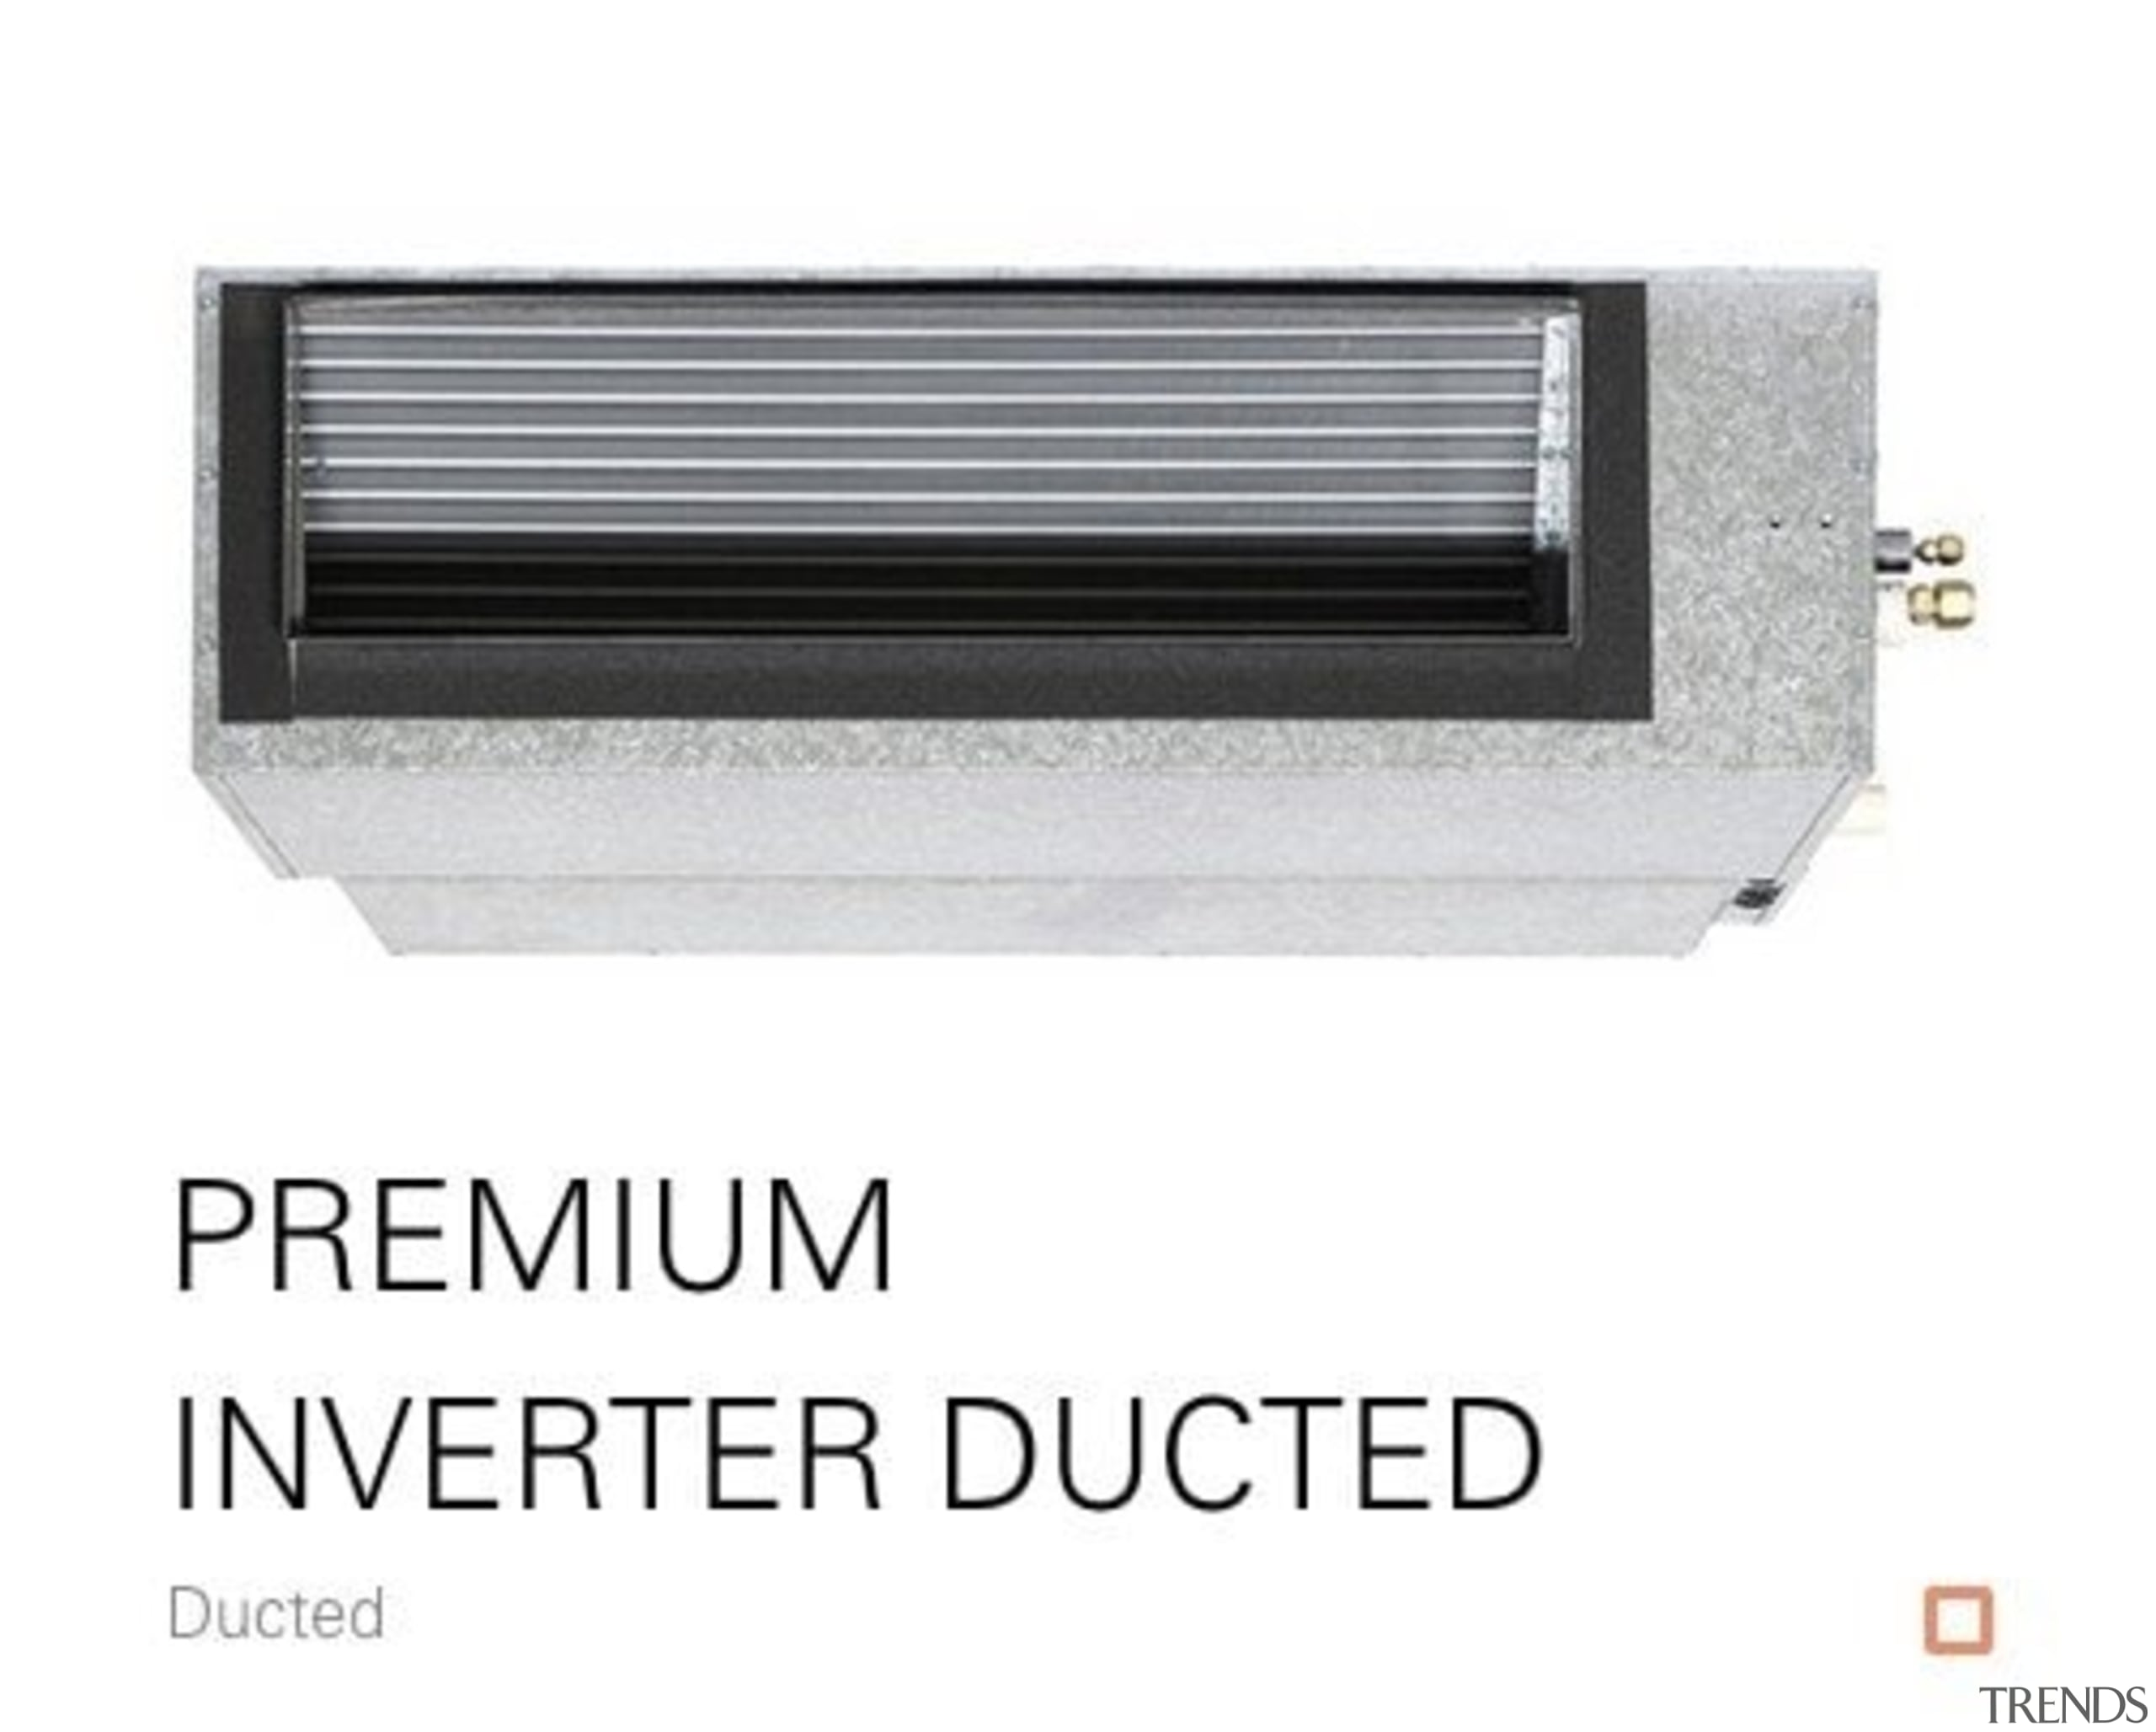 Premium Inverter Ducted - product | white product, white